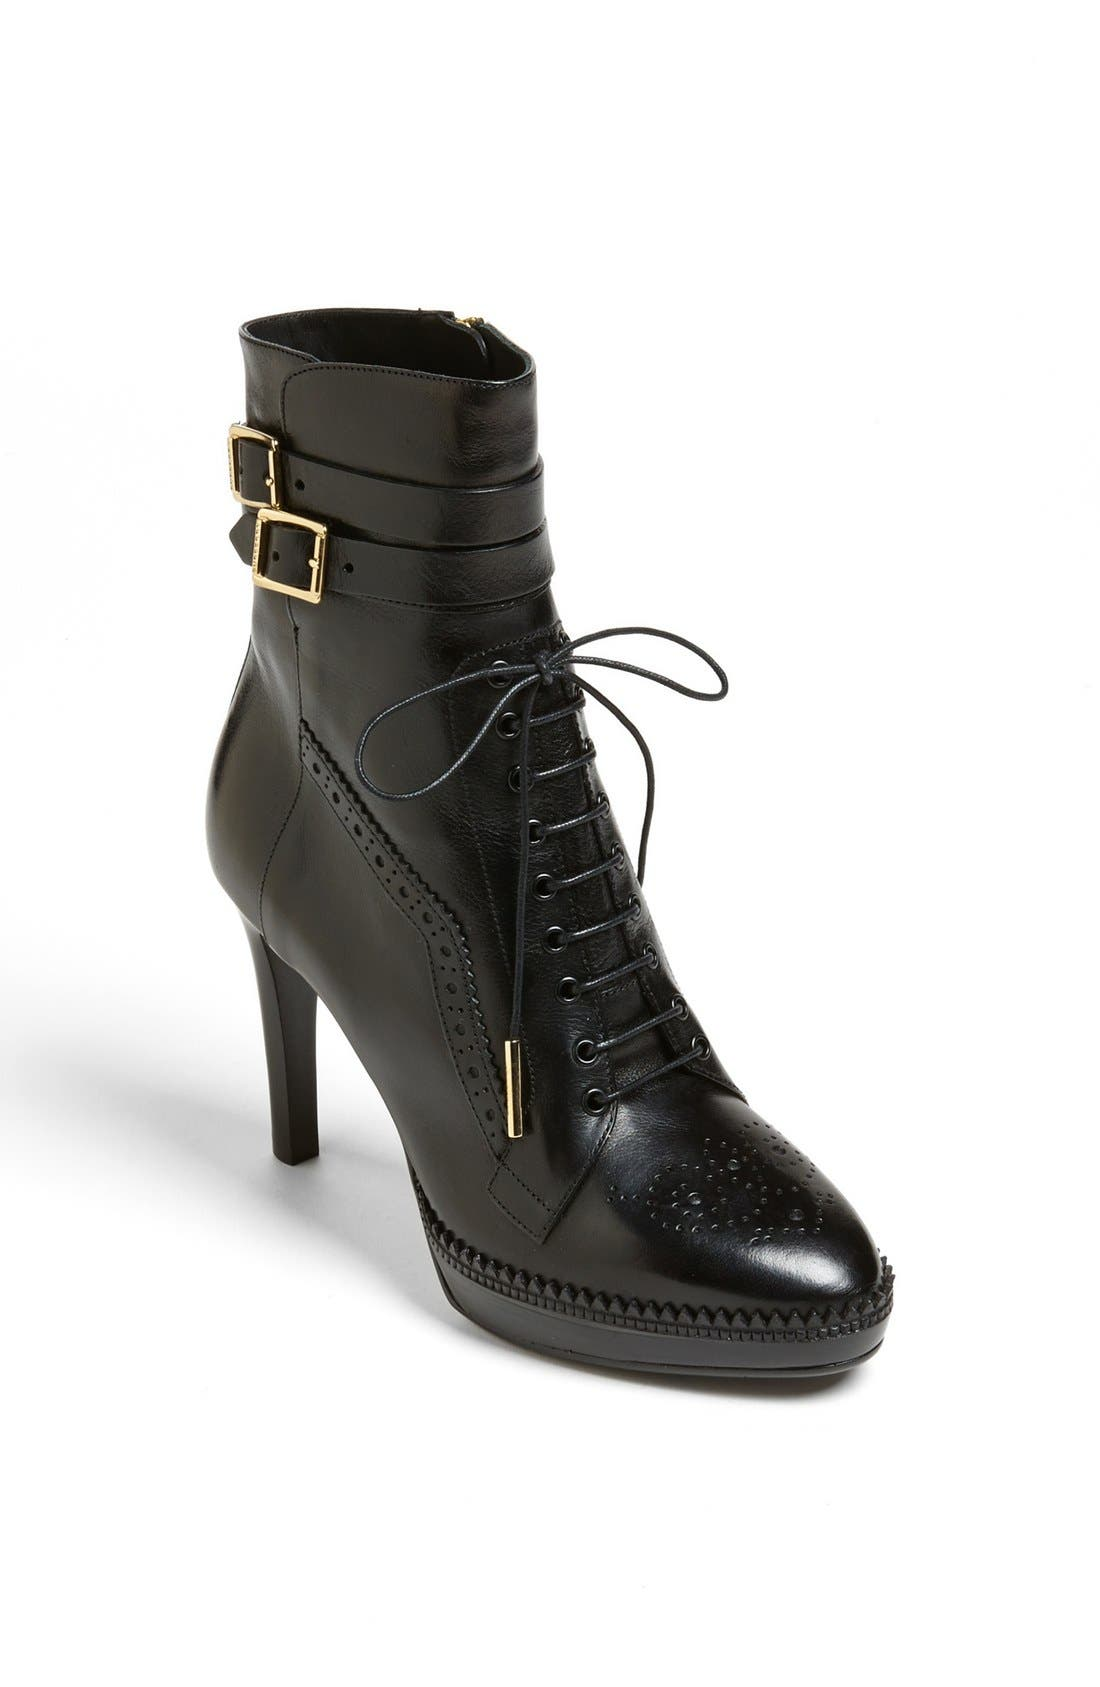 Main Image - Burberry 'Manners' Bootie